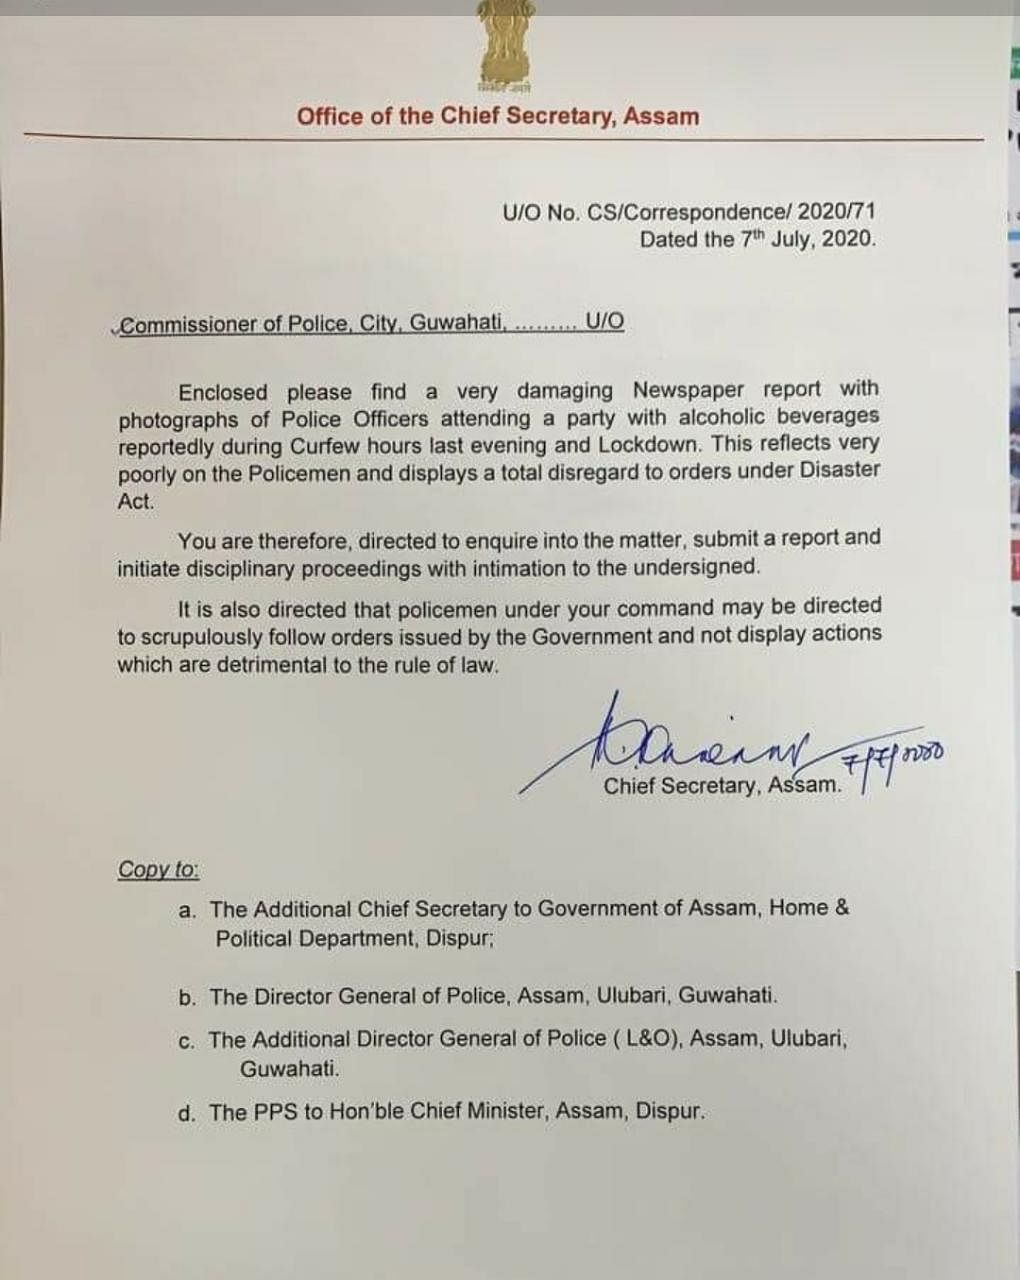 Assam chief secretary asked Commissioner of Police, Guwahati to inquire into the incident on July 7